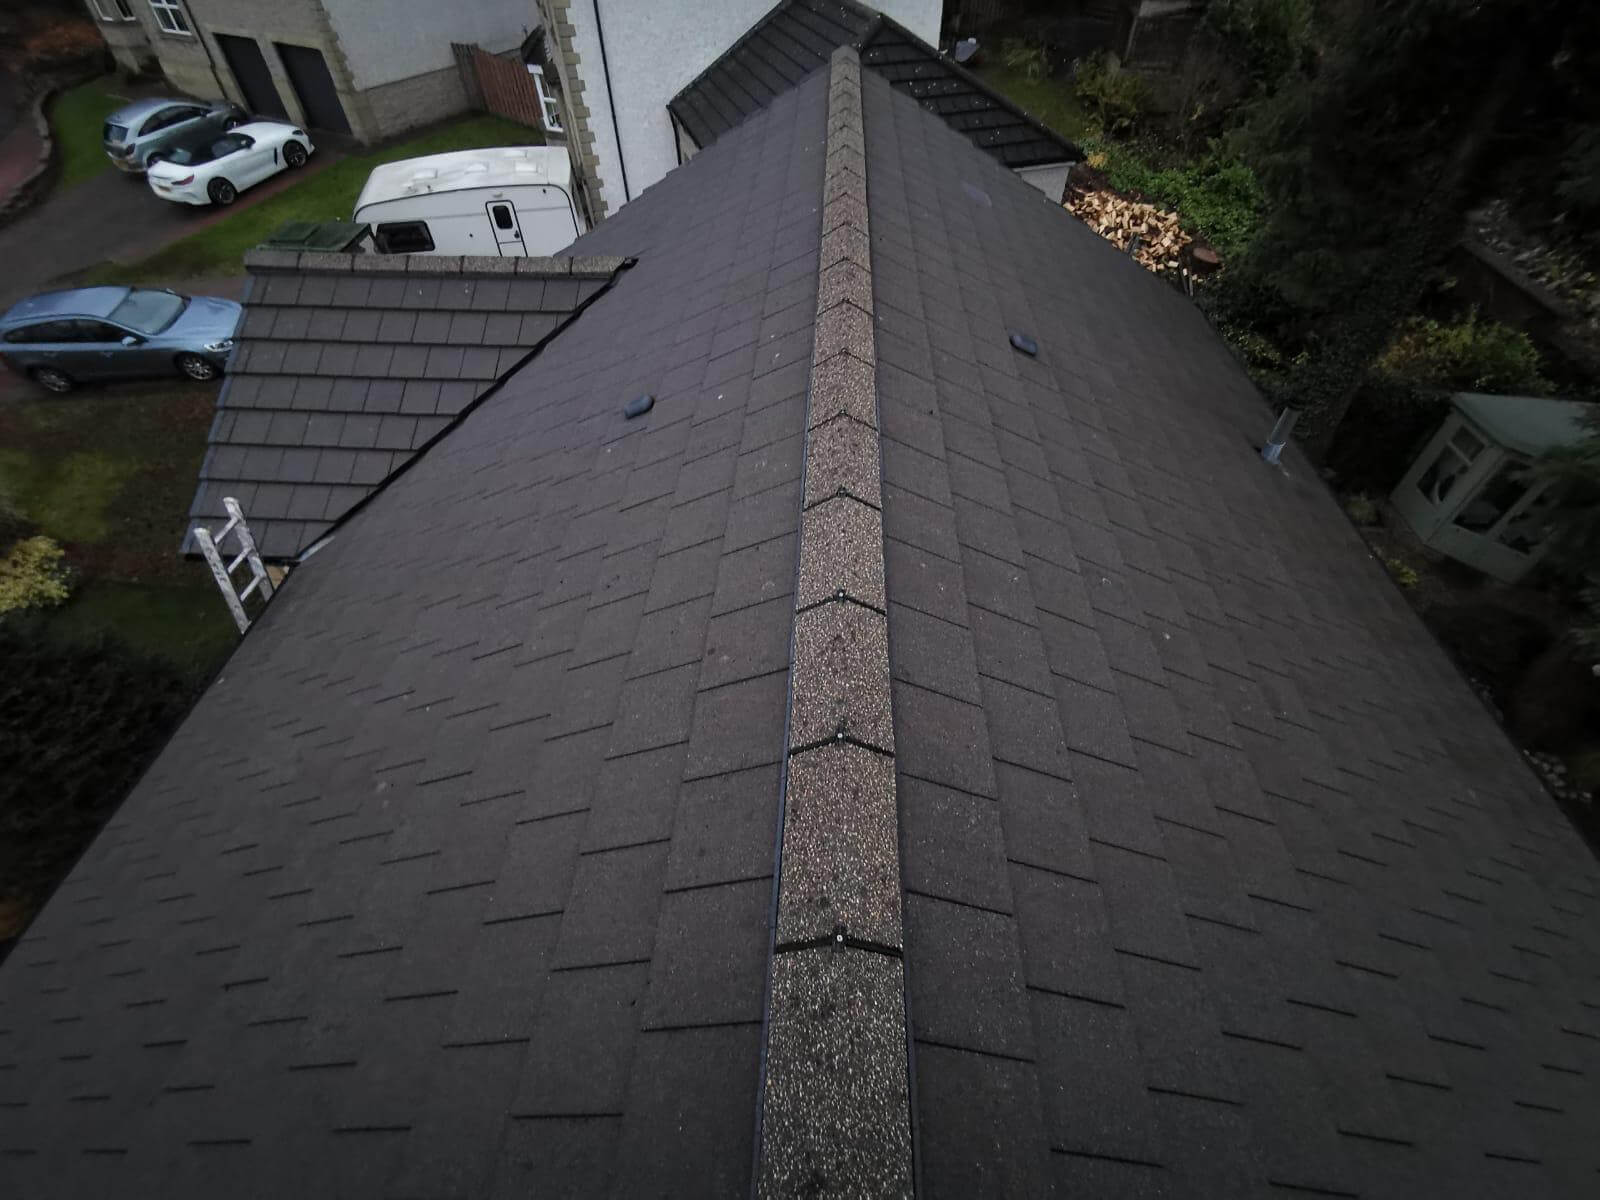 Gutter and roof after roofing services Glasgow